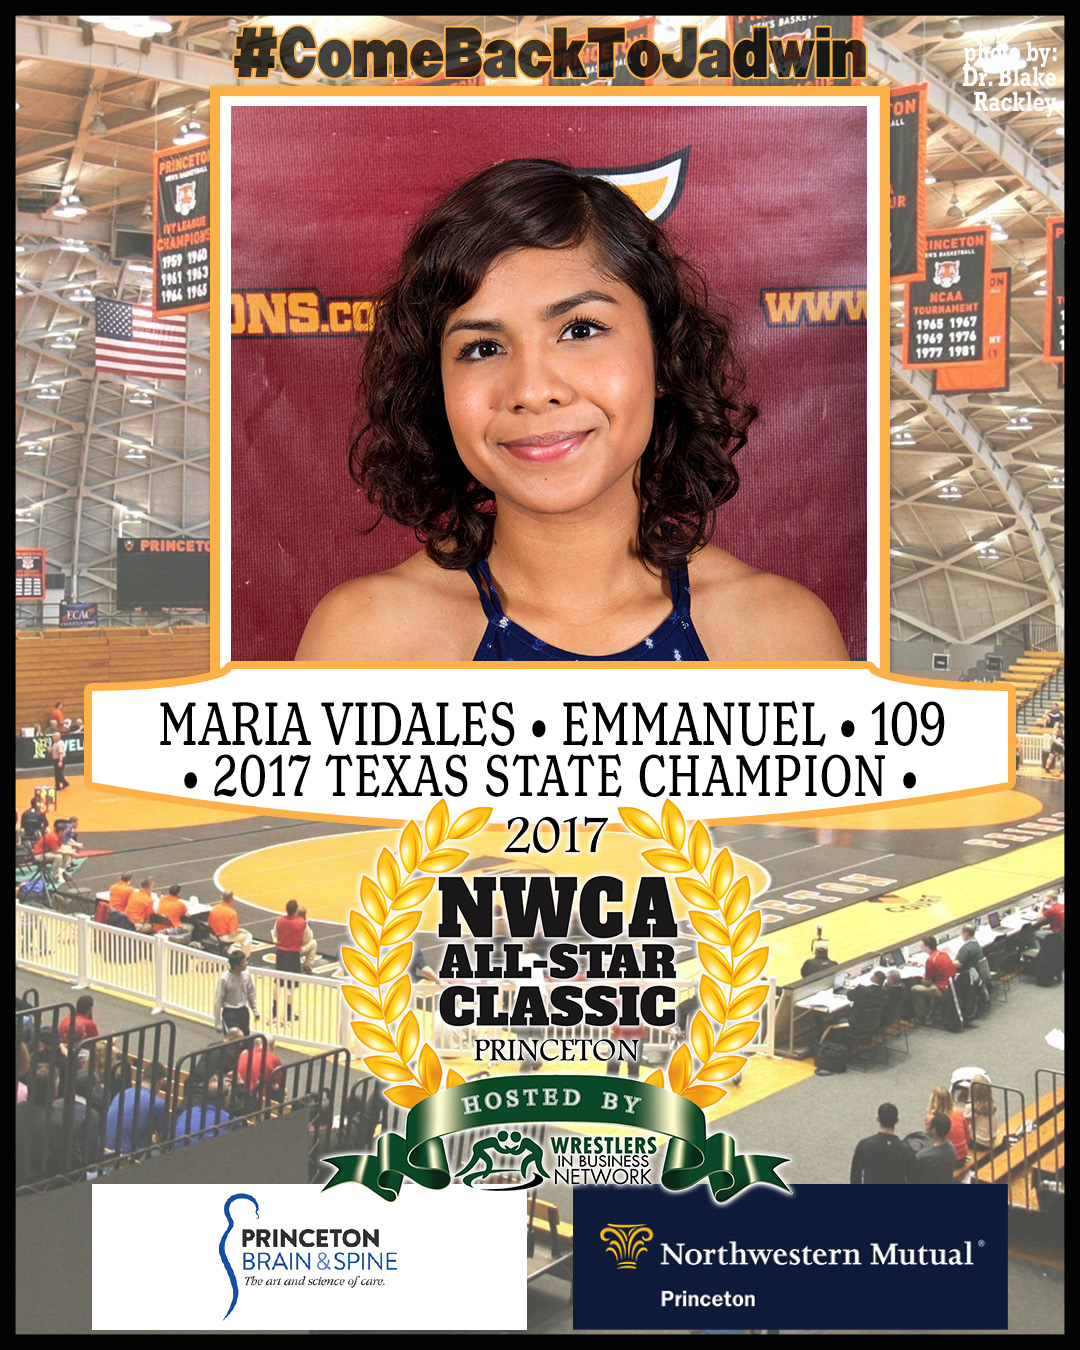 2017 All Star Classic Social Media Graphic_MARIA_VIDALES.jpg